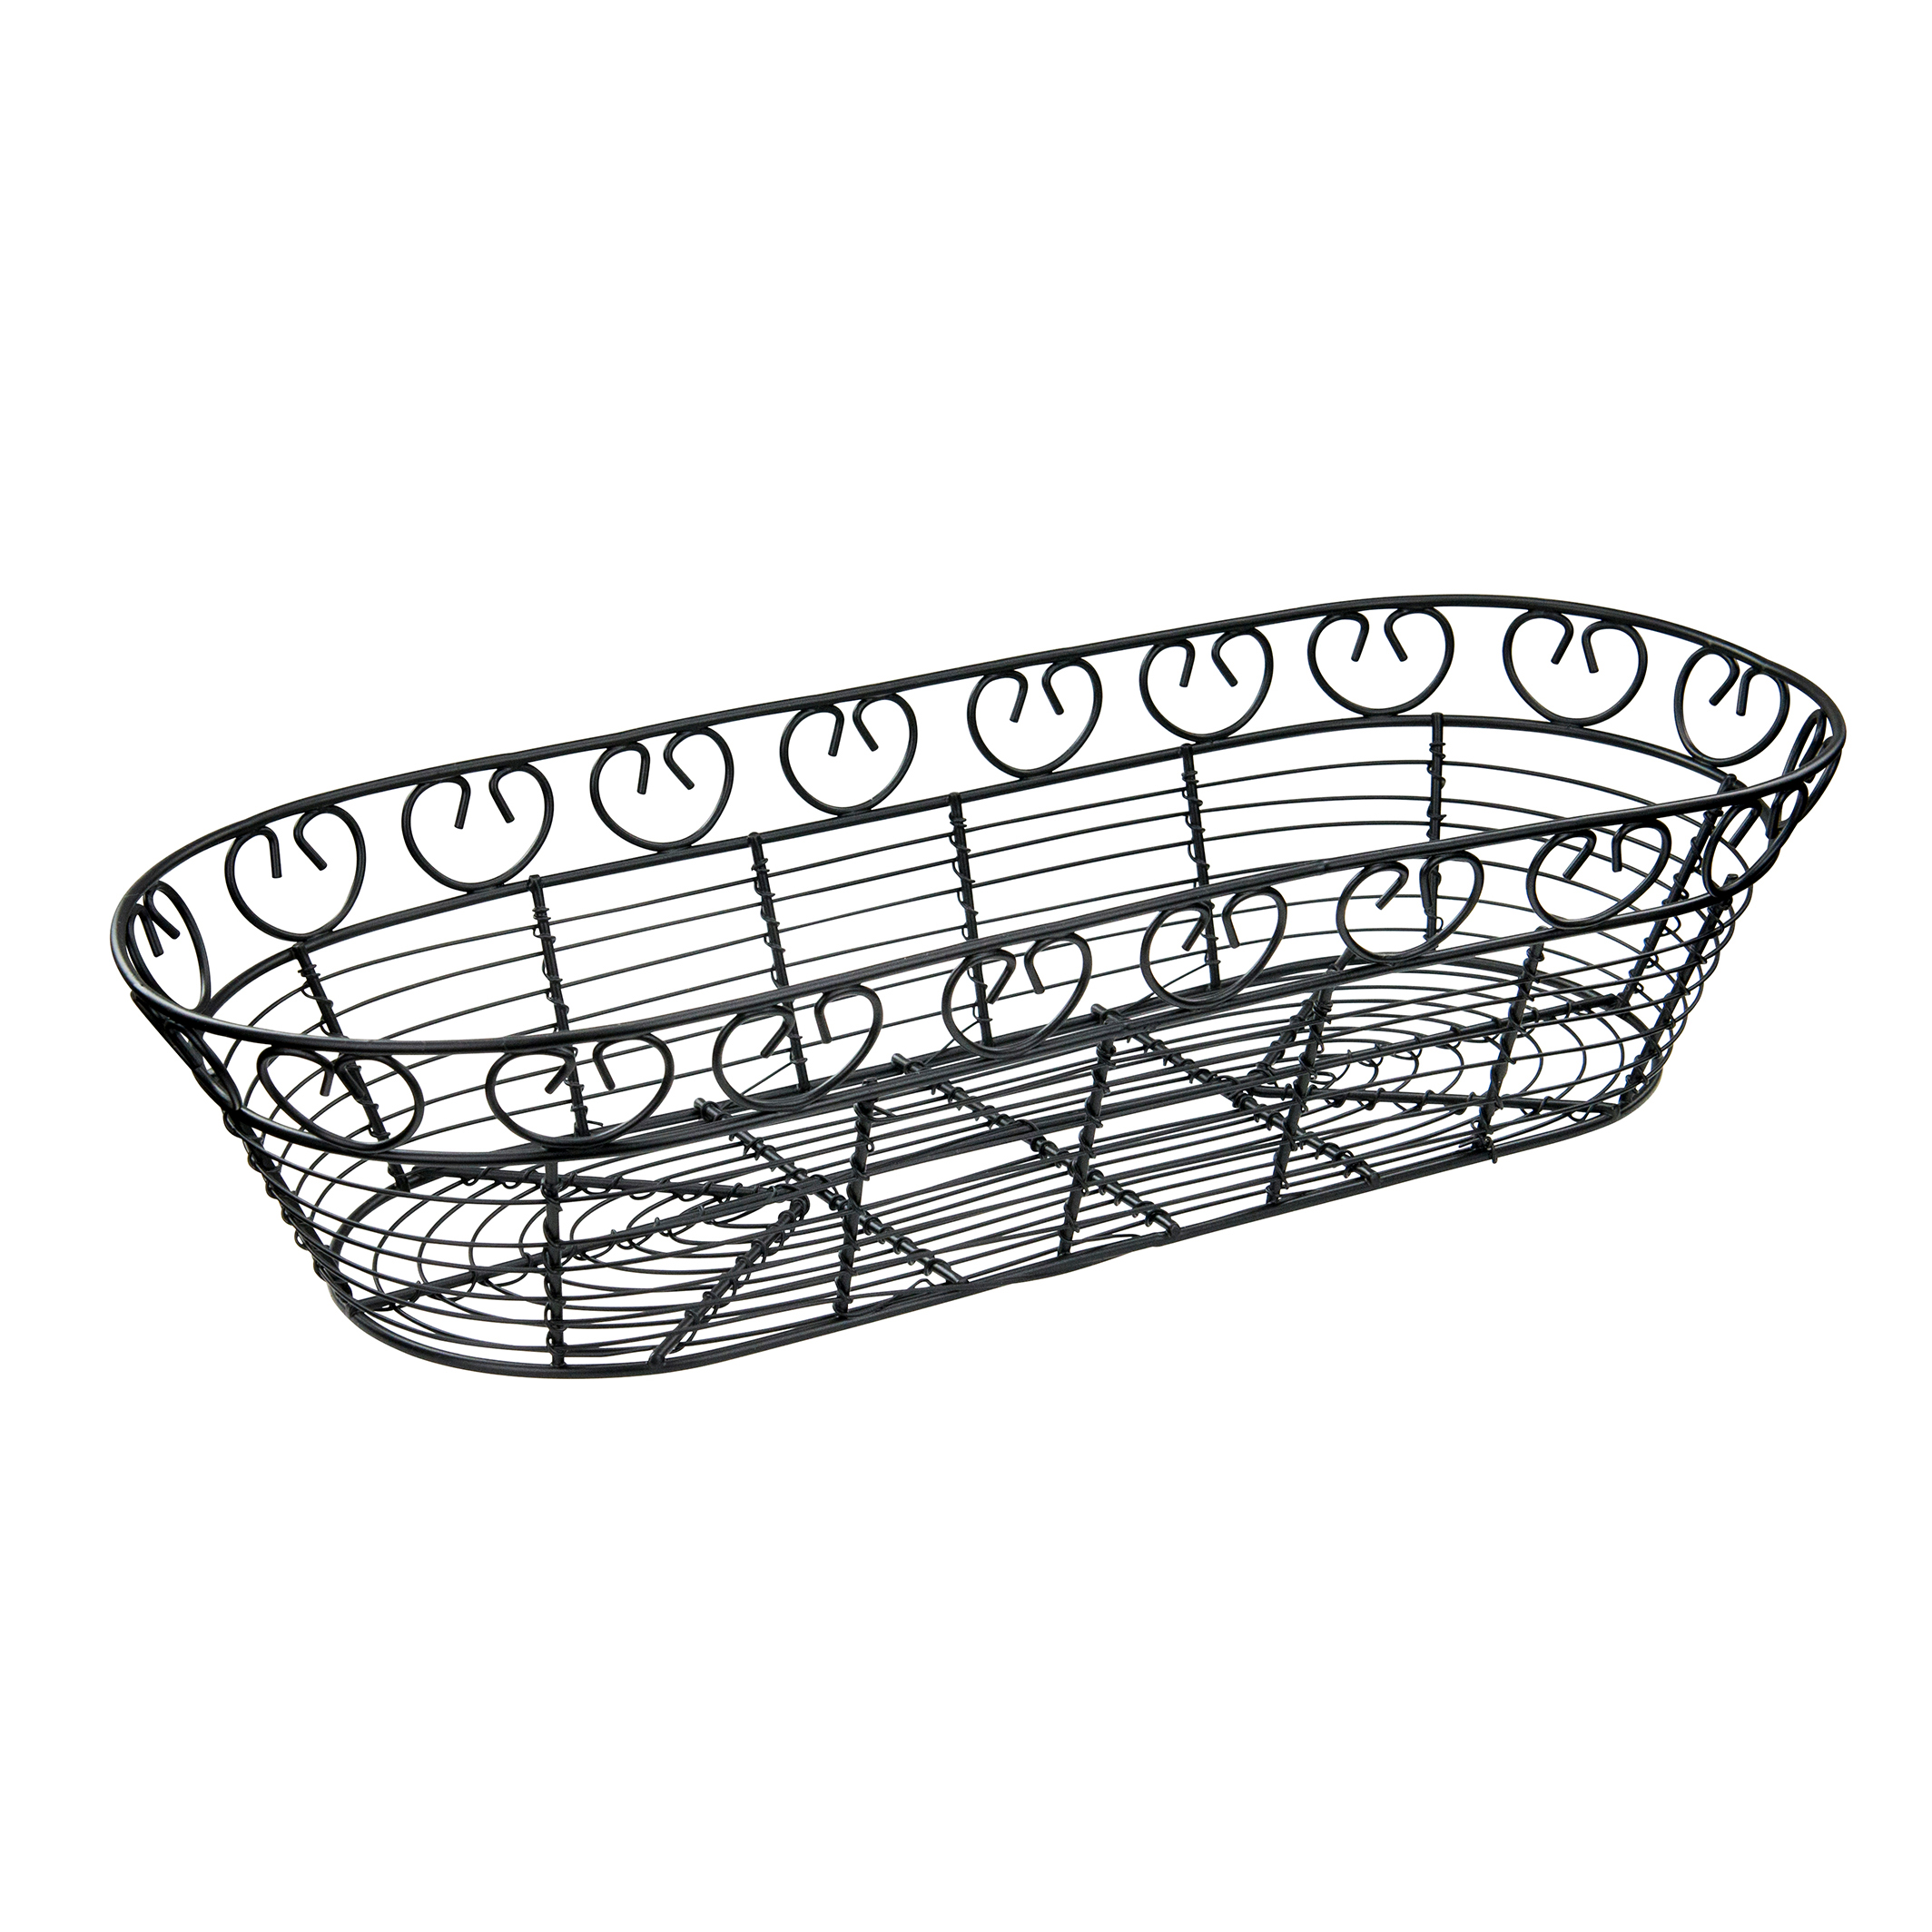 Winco WBKG-15 basket, tabletop, metal